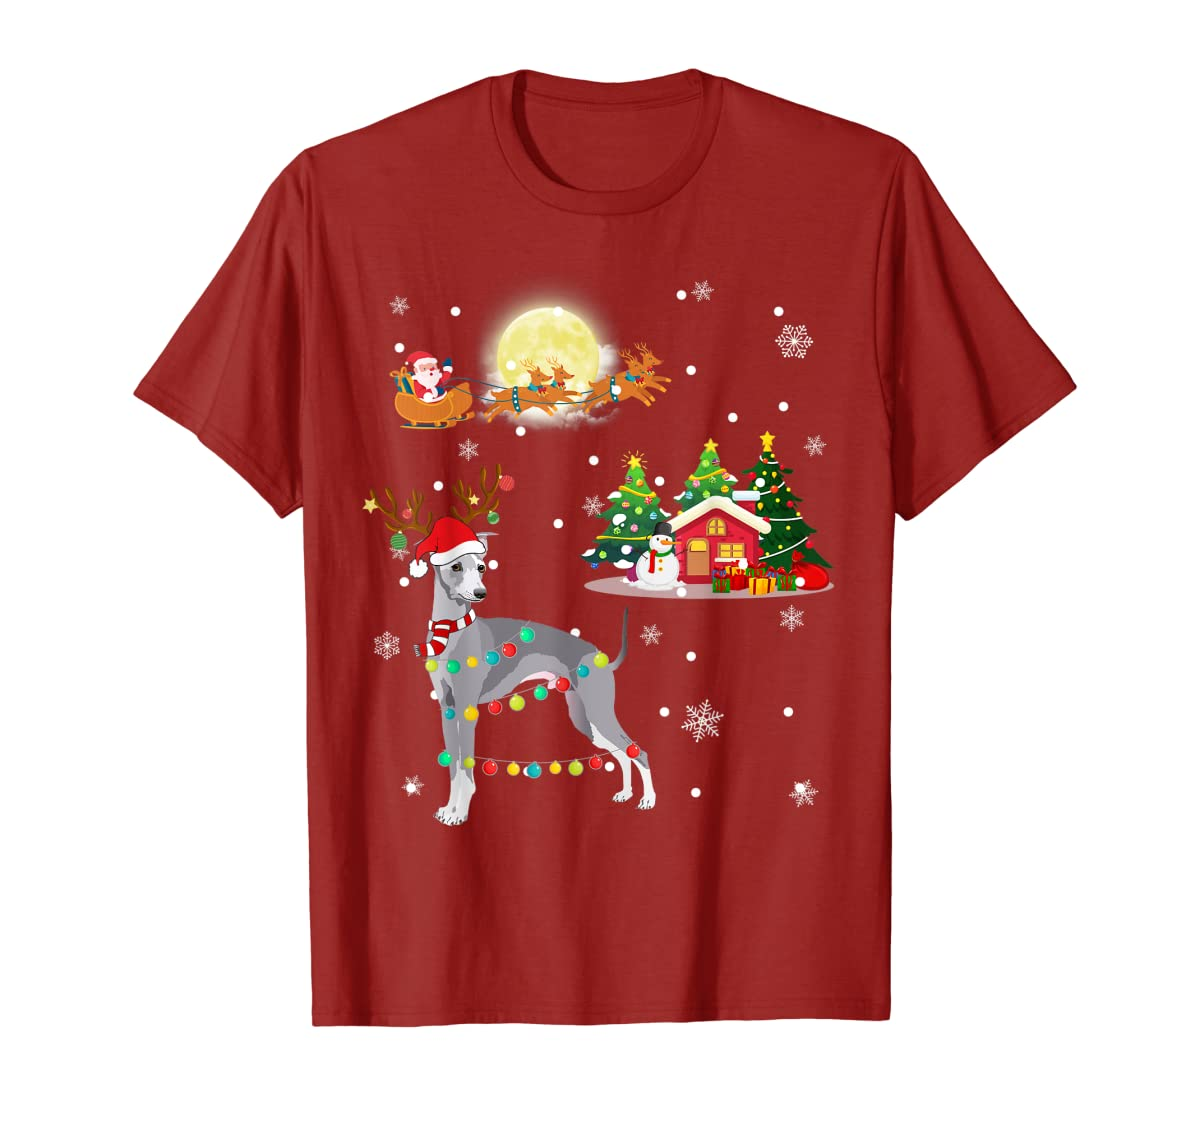 Greyhound Dog Led Light Christmas 2019 Gift T-Shirt-Men's T-Shirt-Red